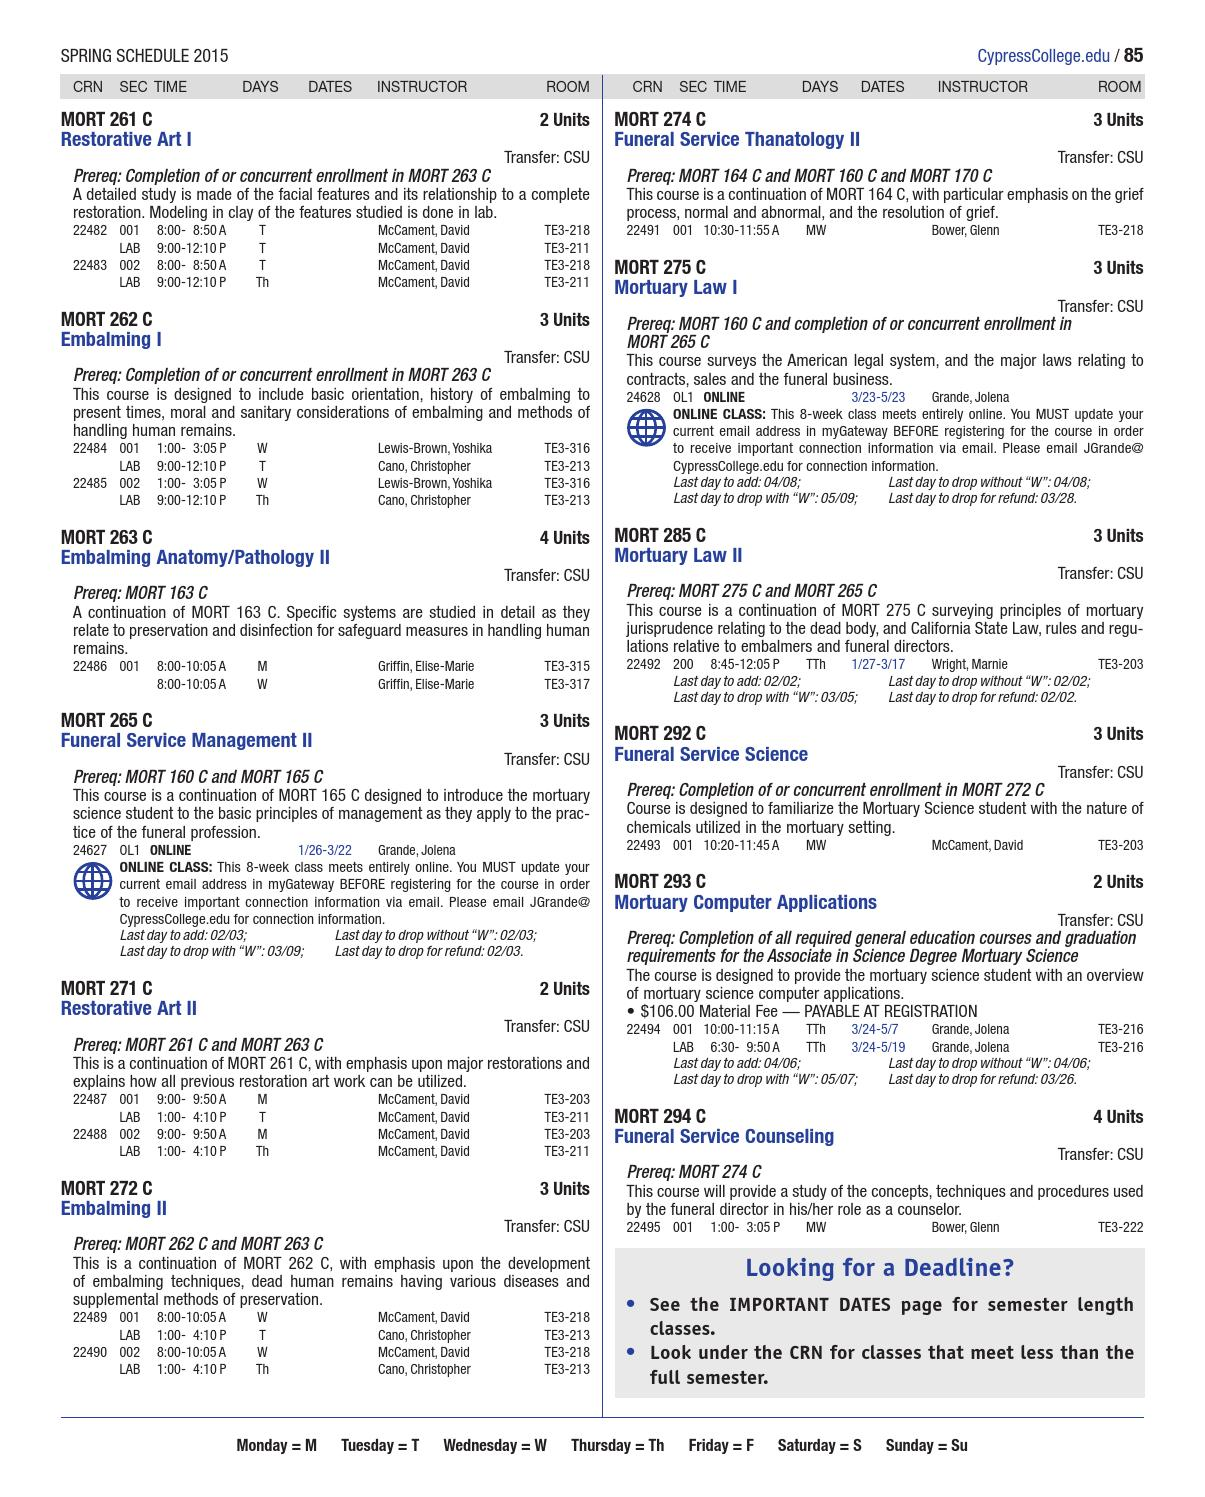 Cypress College Spring 2015 Class Schedule by Cypress College - issuu